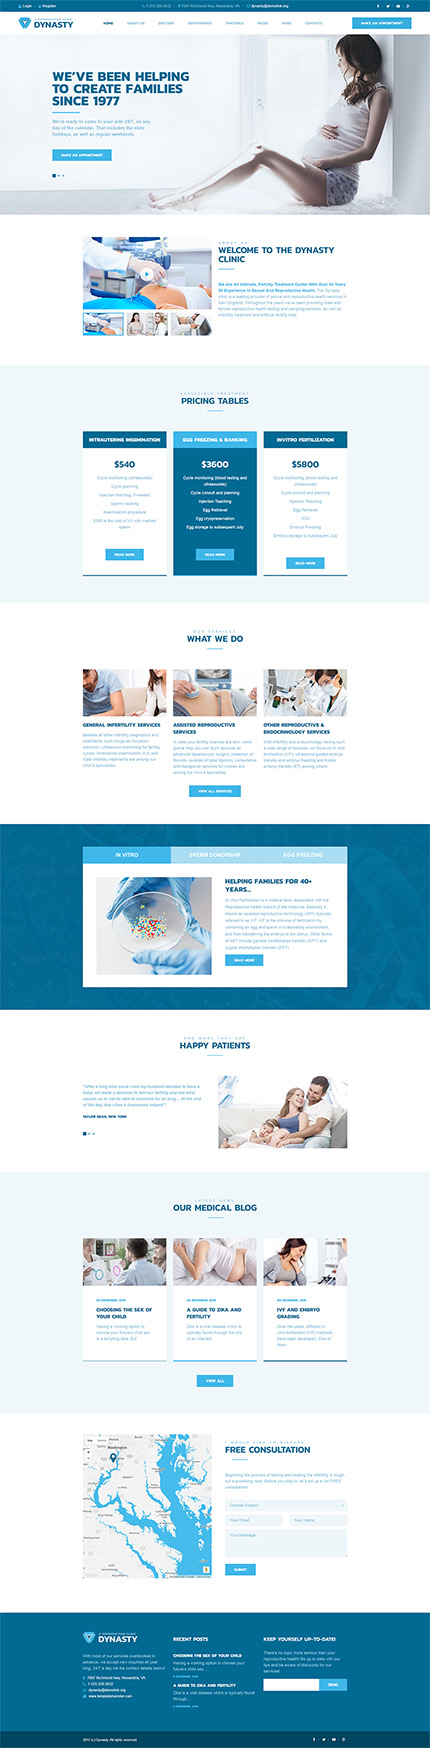 Medical website inspirations at your coffee break? Browse for more WordPress #templates! // Regular price: $75 // Sources available:.PHP, This theme is widgetized #Medical #WordPress